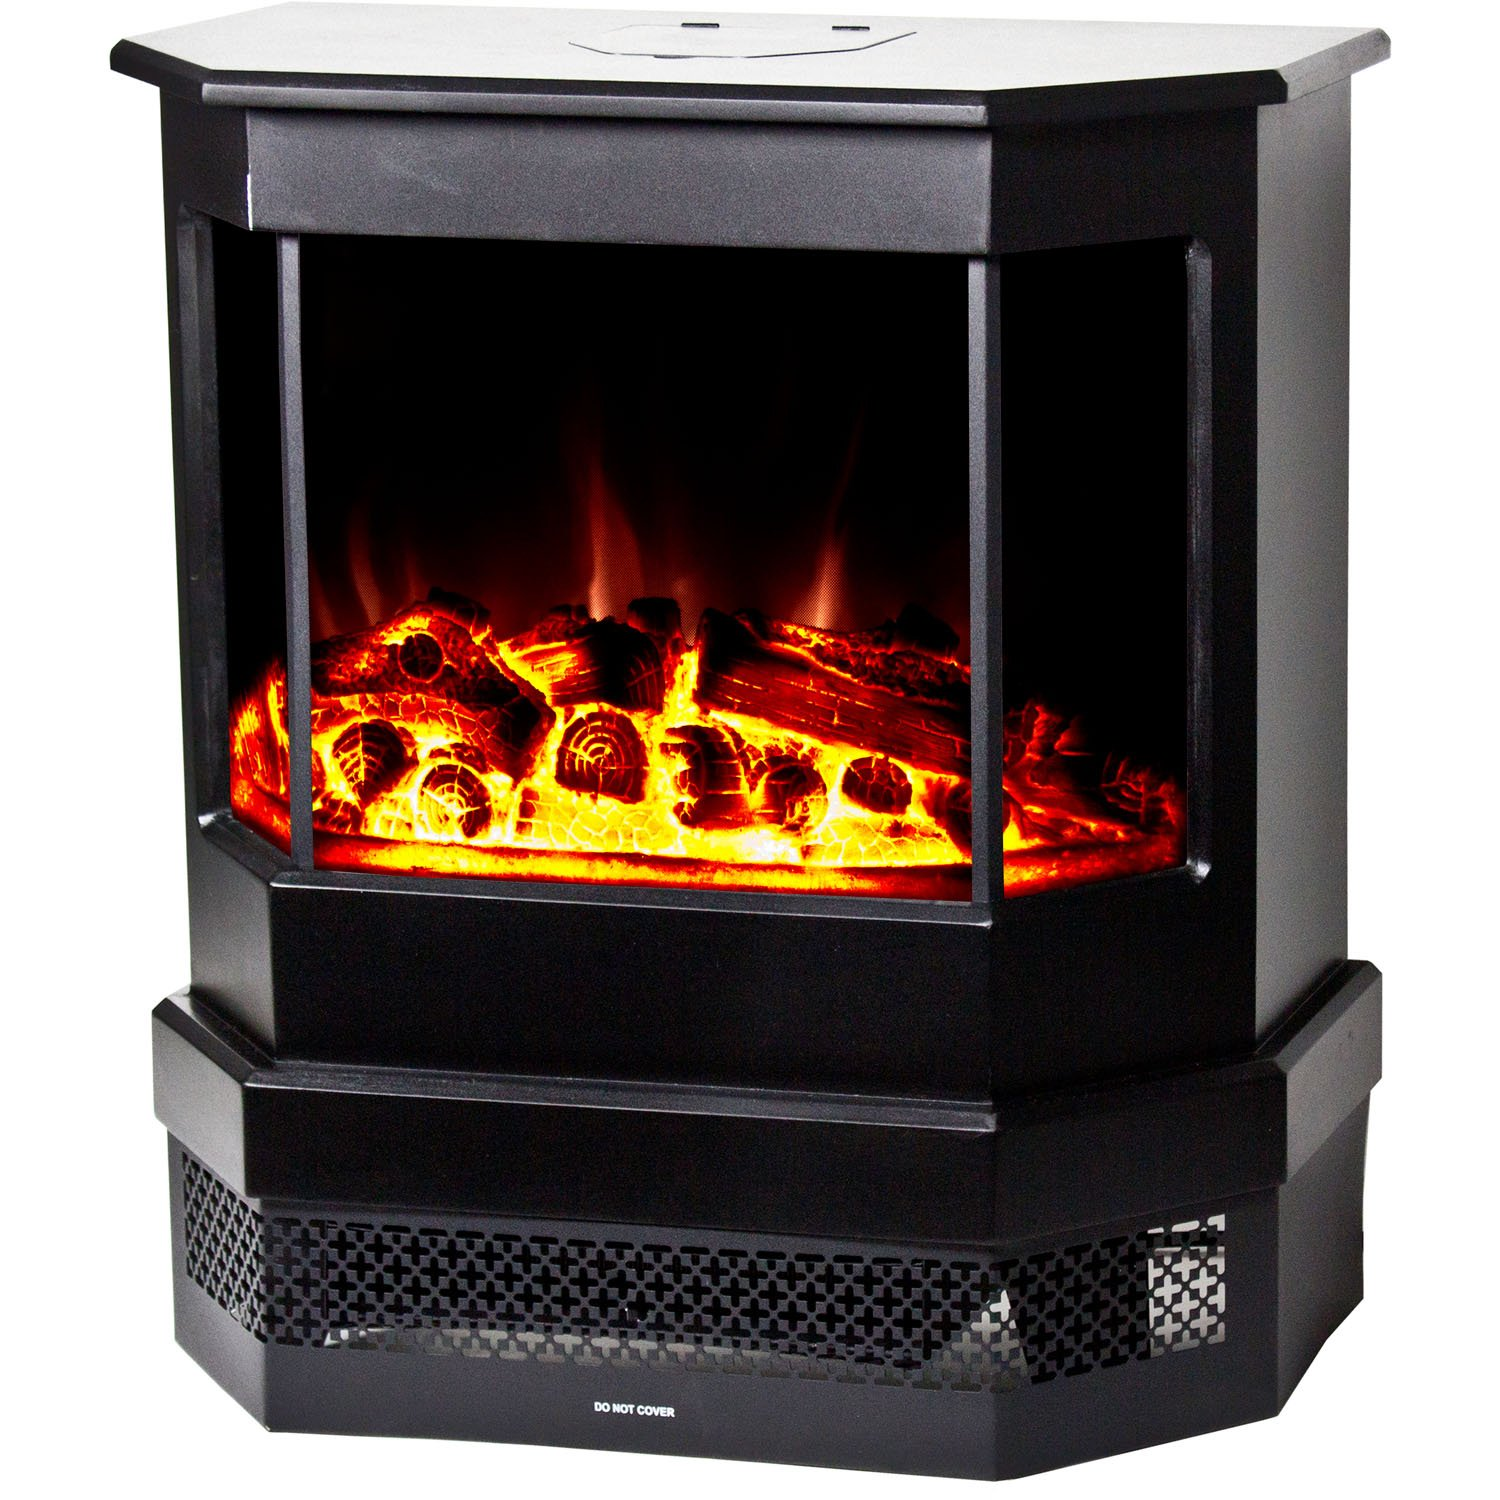 Amazoncom Warm House CMSF 10310 Cleveland Floor Standing